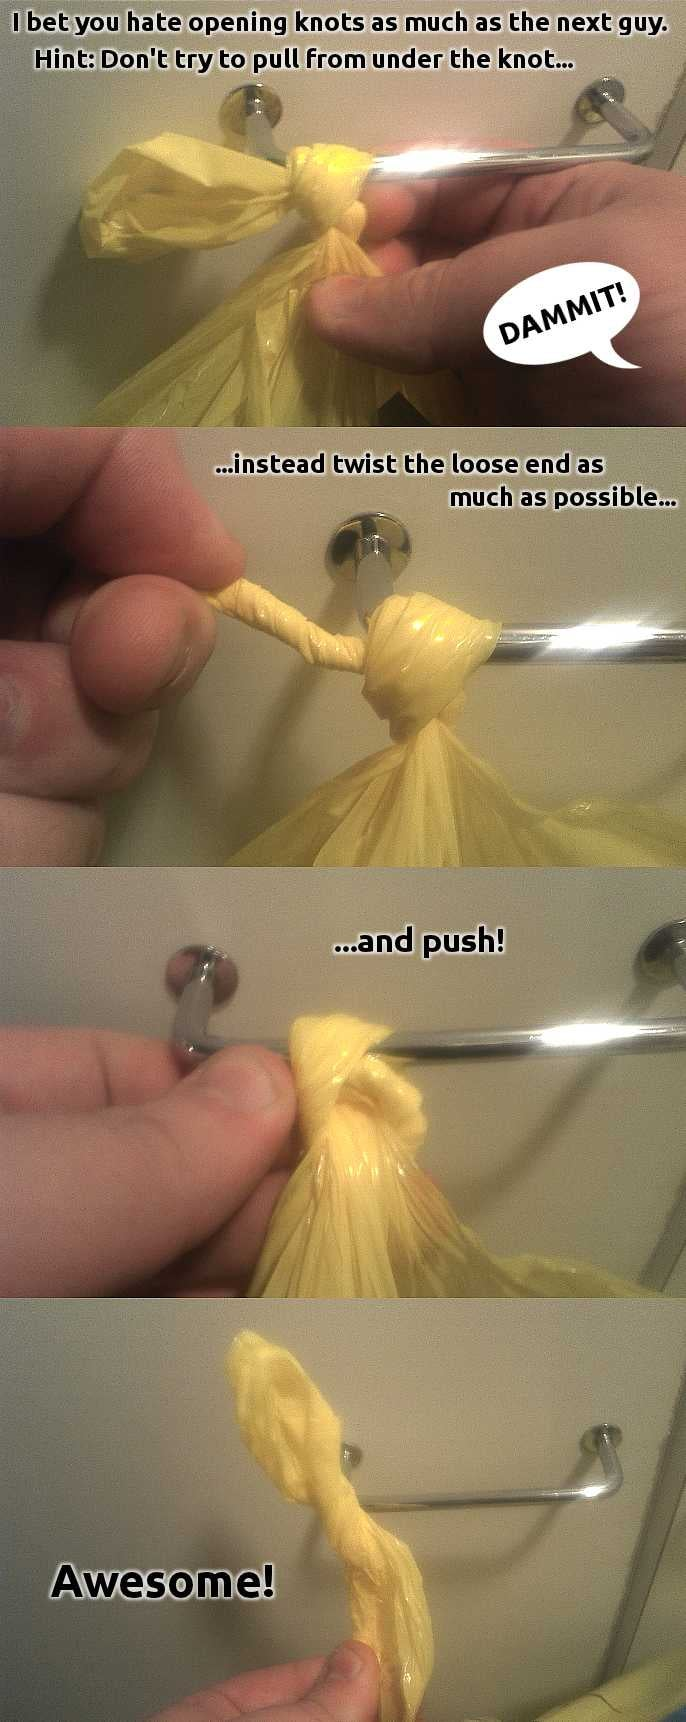 To Loosen Nearly Any Knot, Twist the End and Push